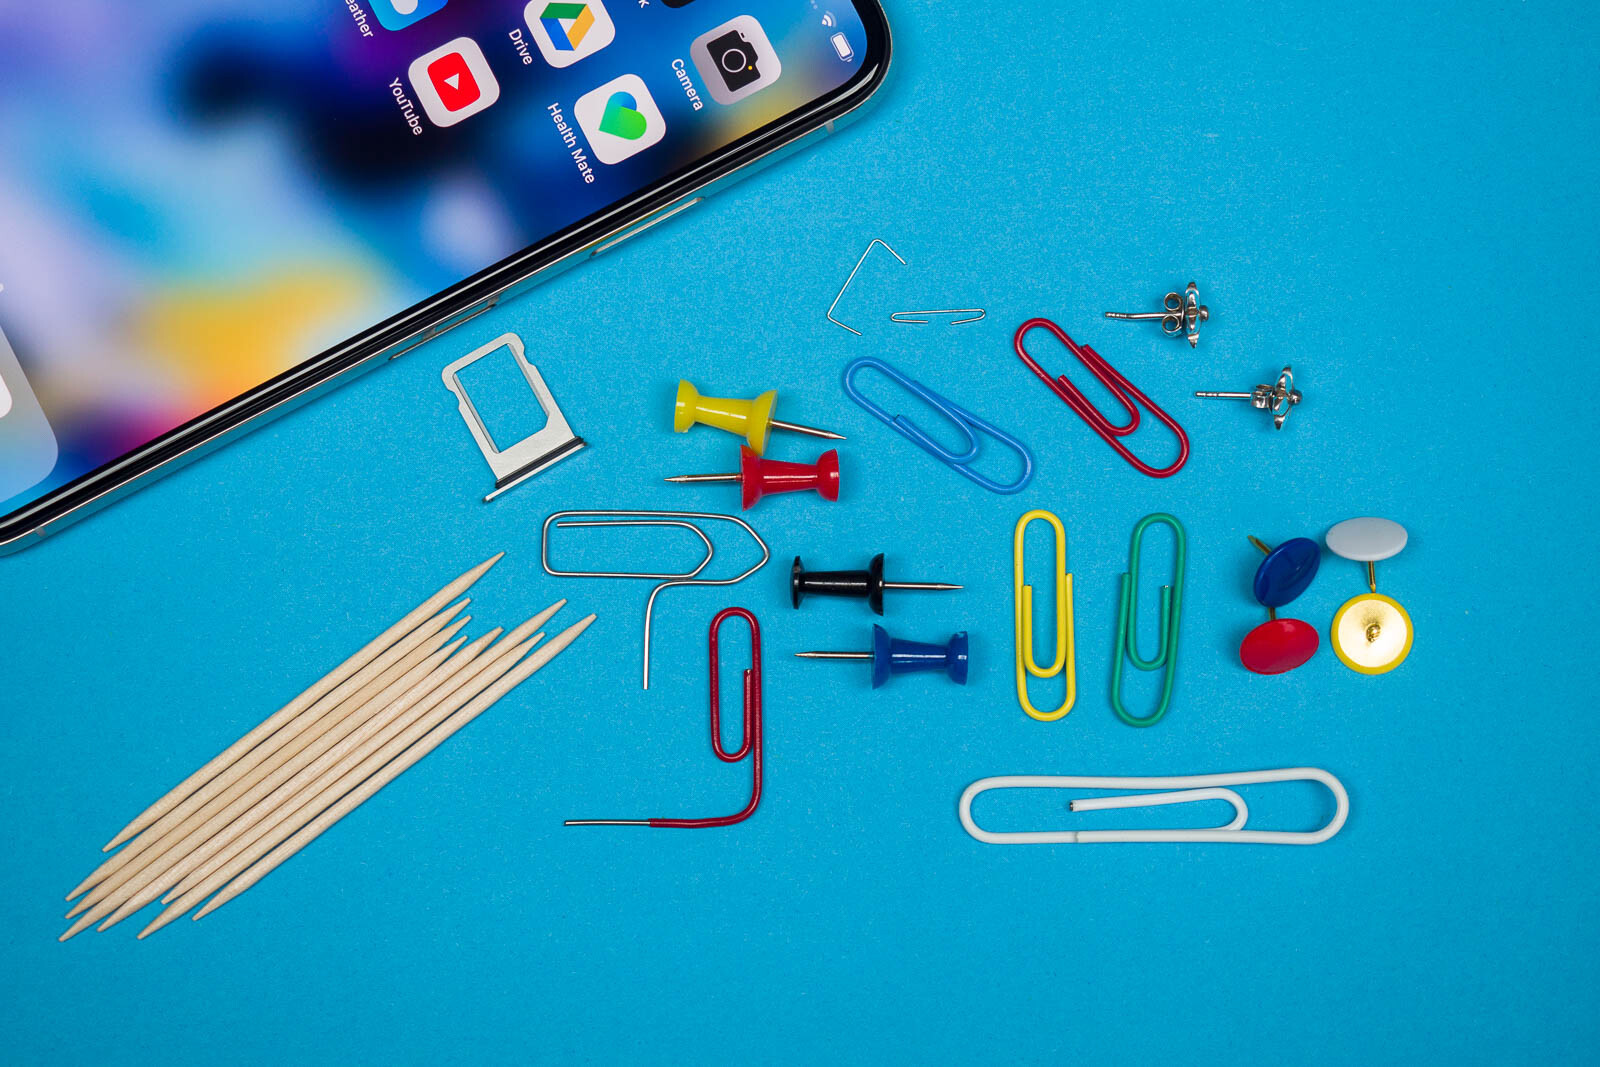 How to open a SIM card tray when an ejector tool isn't around (the MacGyver way)